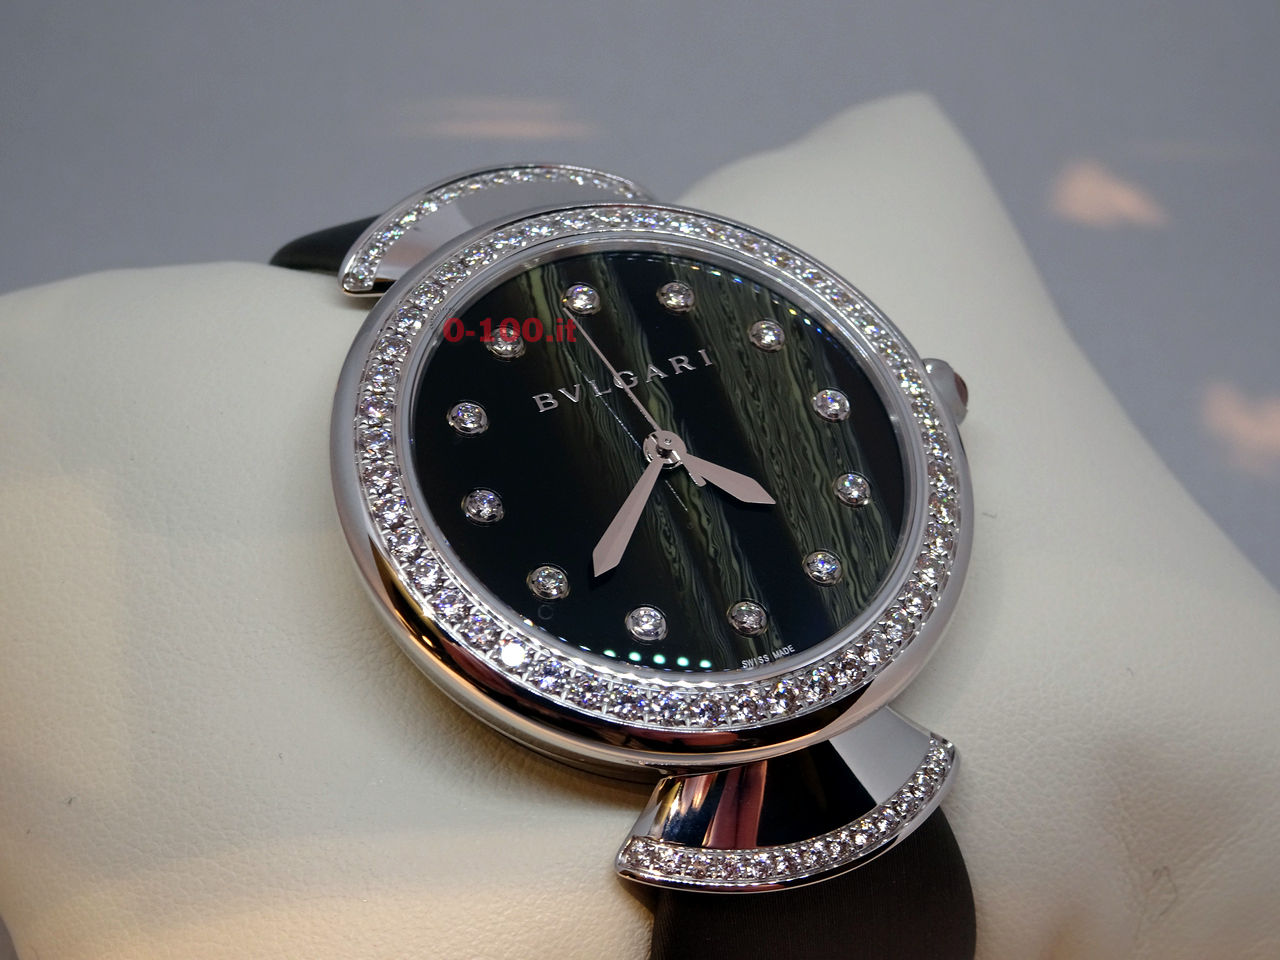 baselworld-2016-bulgari-0-100_1